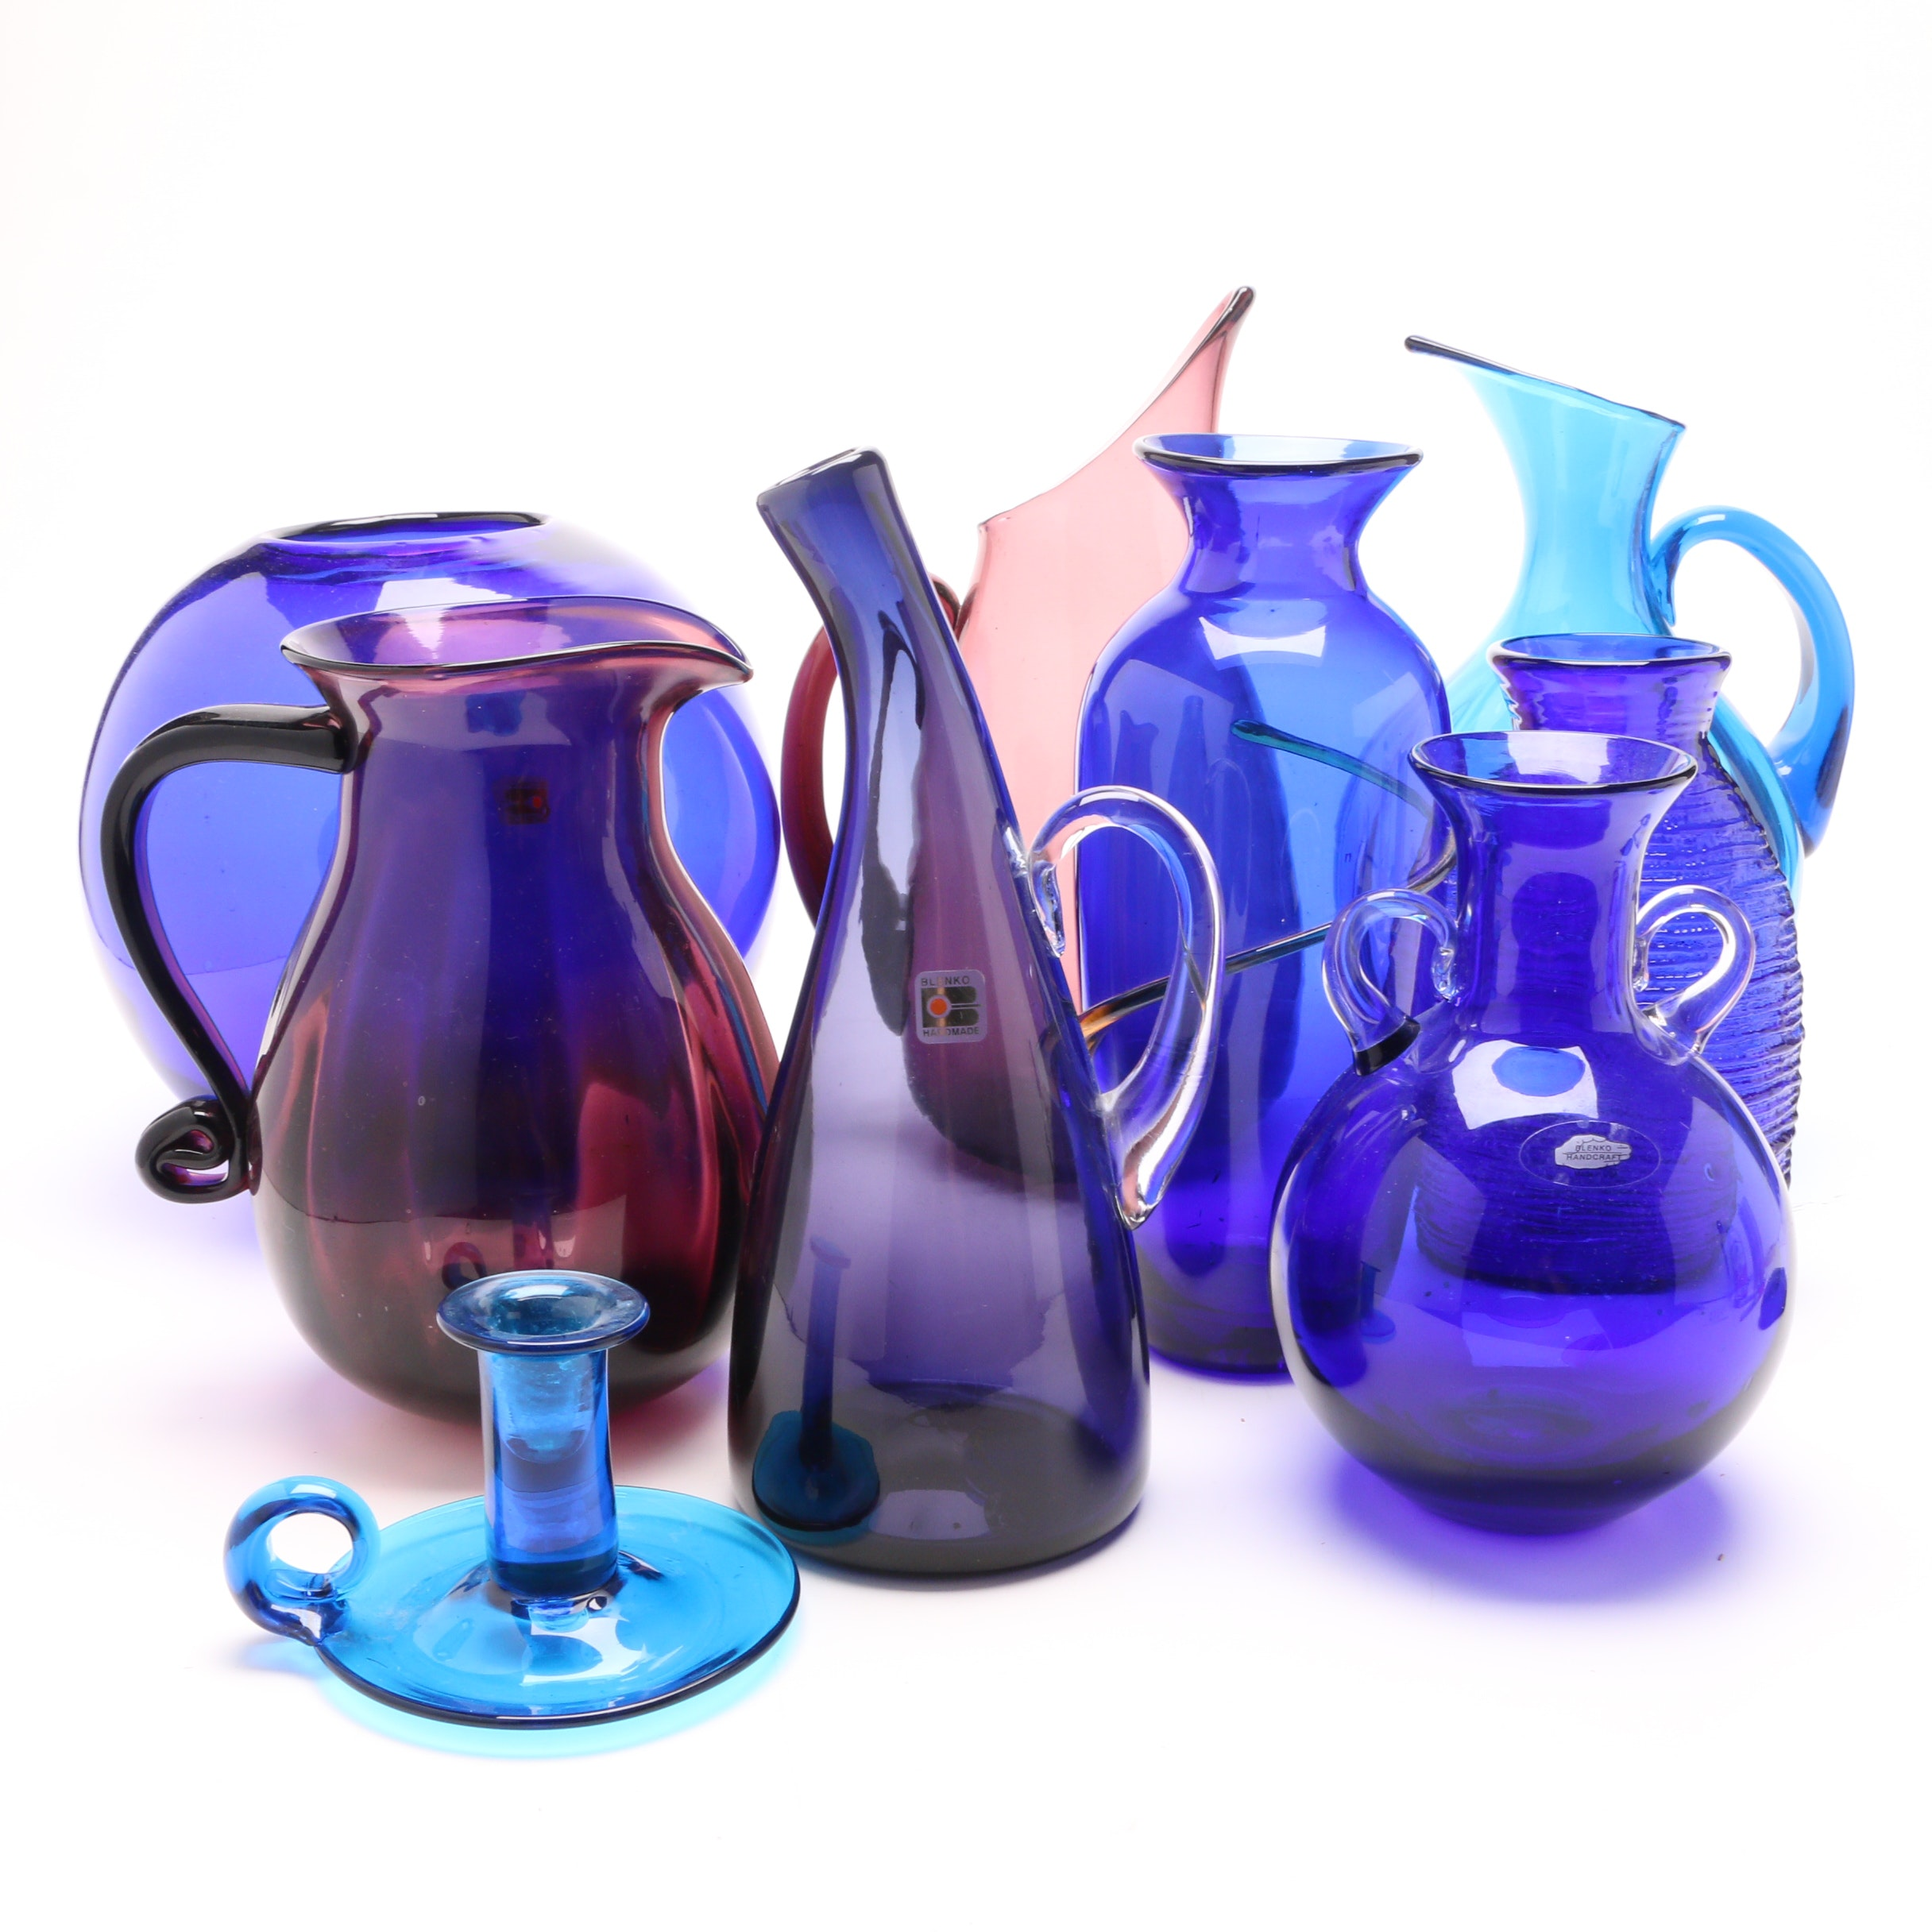 Blenko Glass Company Cobalt Blue and Violet Glass Vases and Pitchers